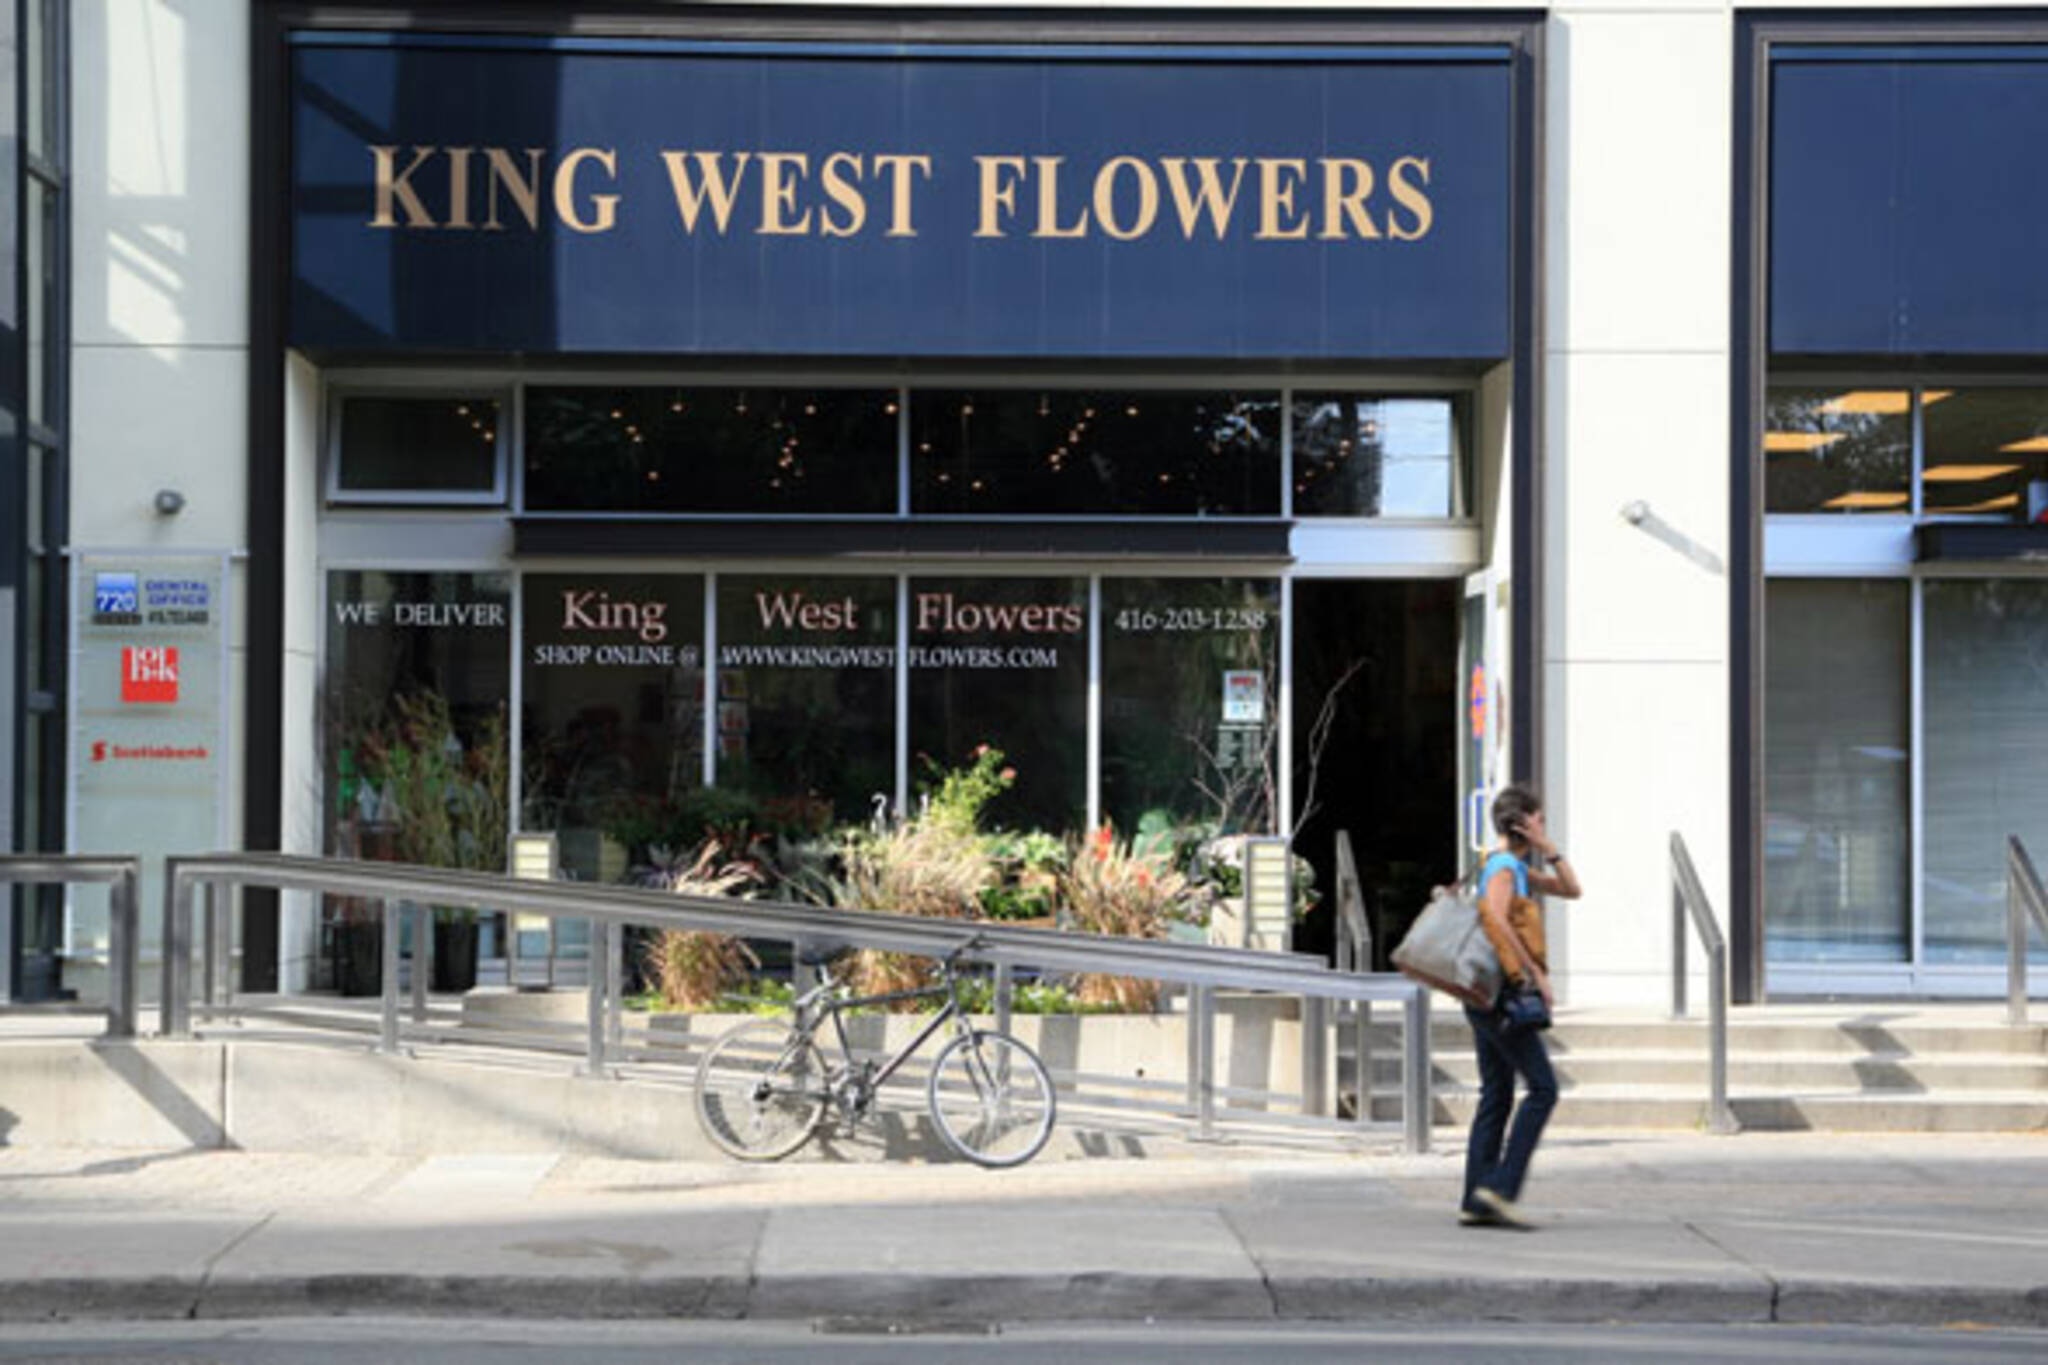 20071009_kingwestflowers.jpg